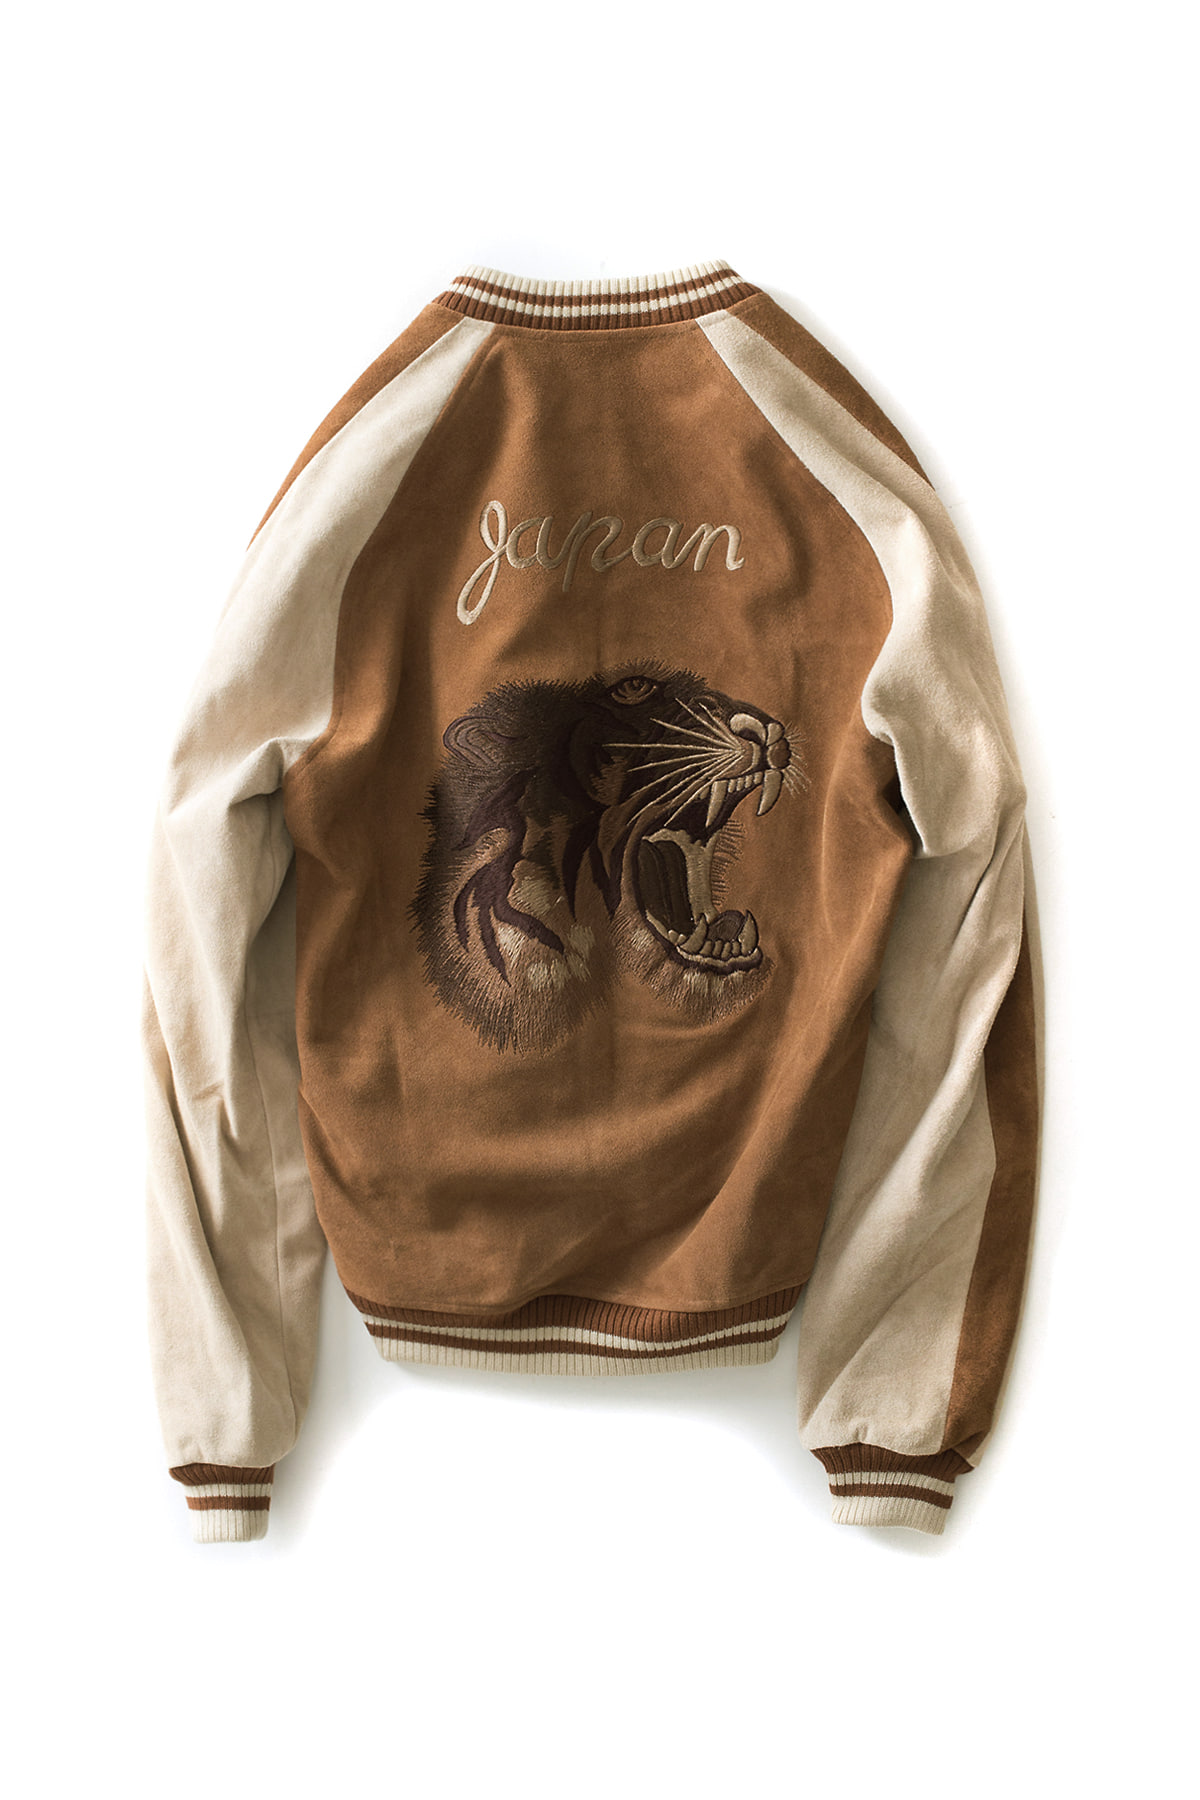 STAMMBAUM : Leather Souvenir Jacket (Brown x Beige)